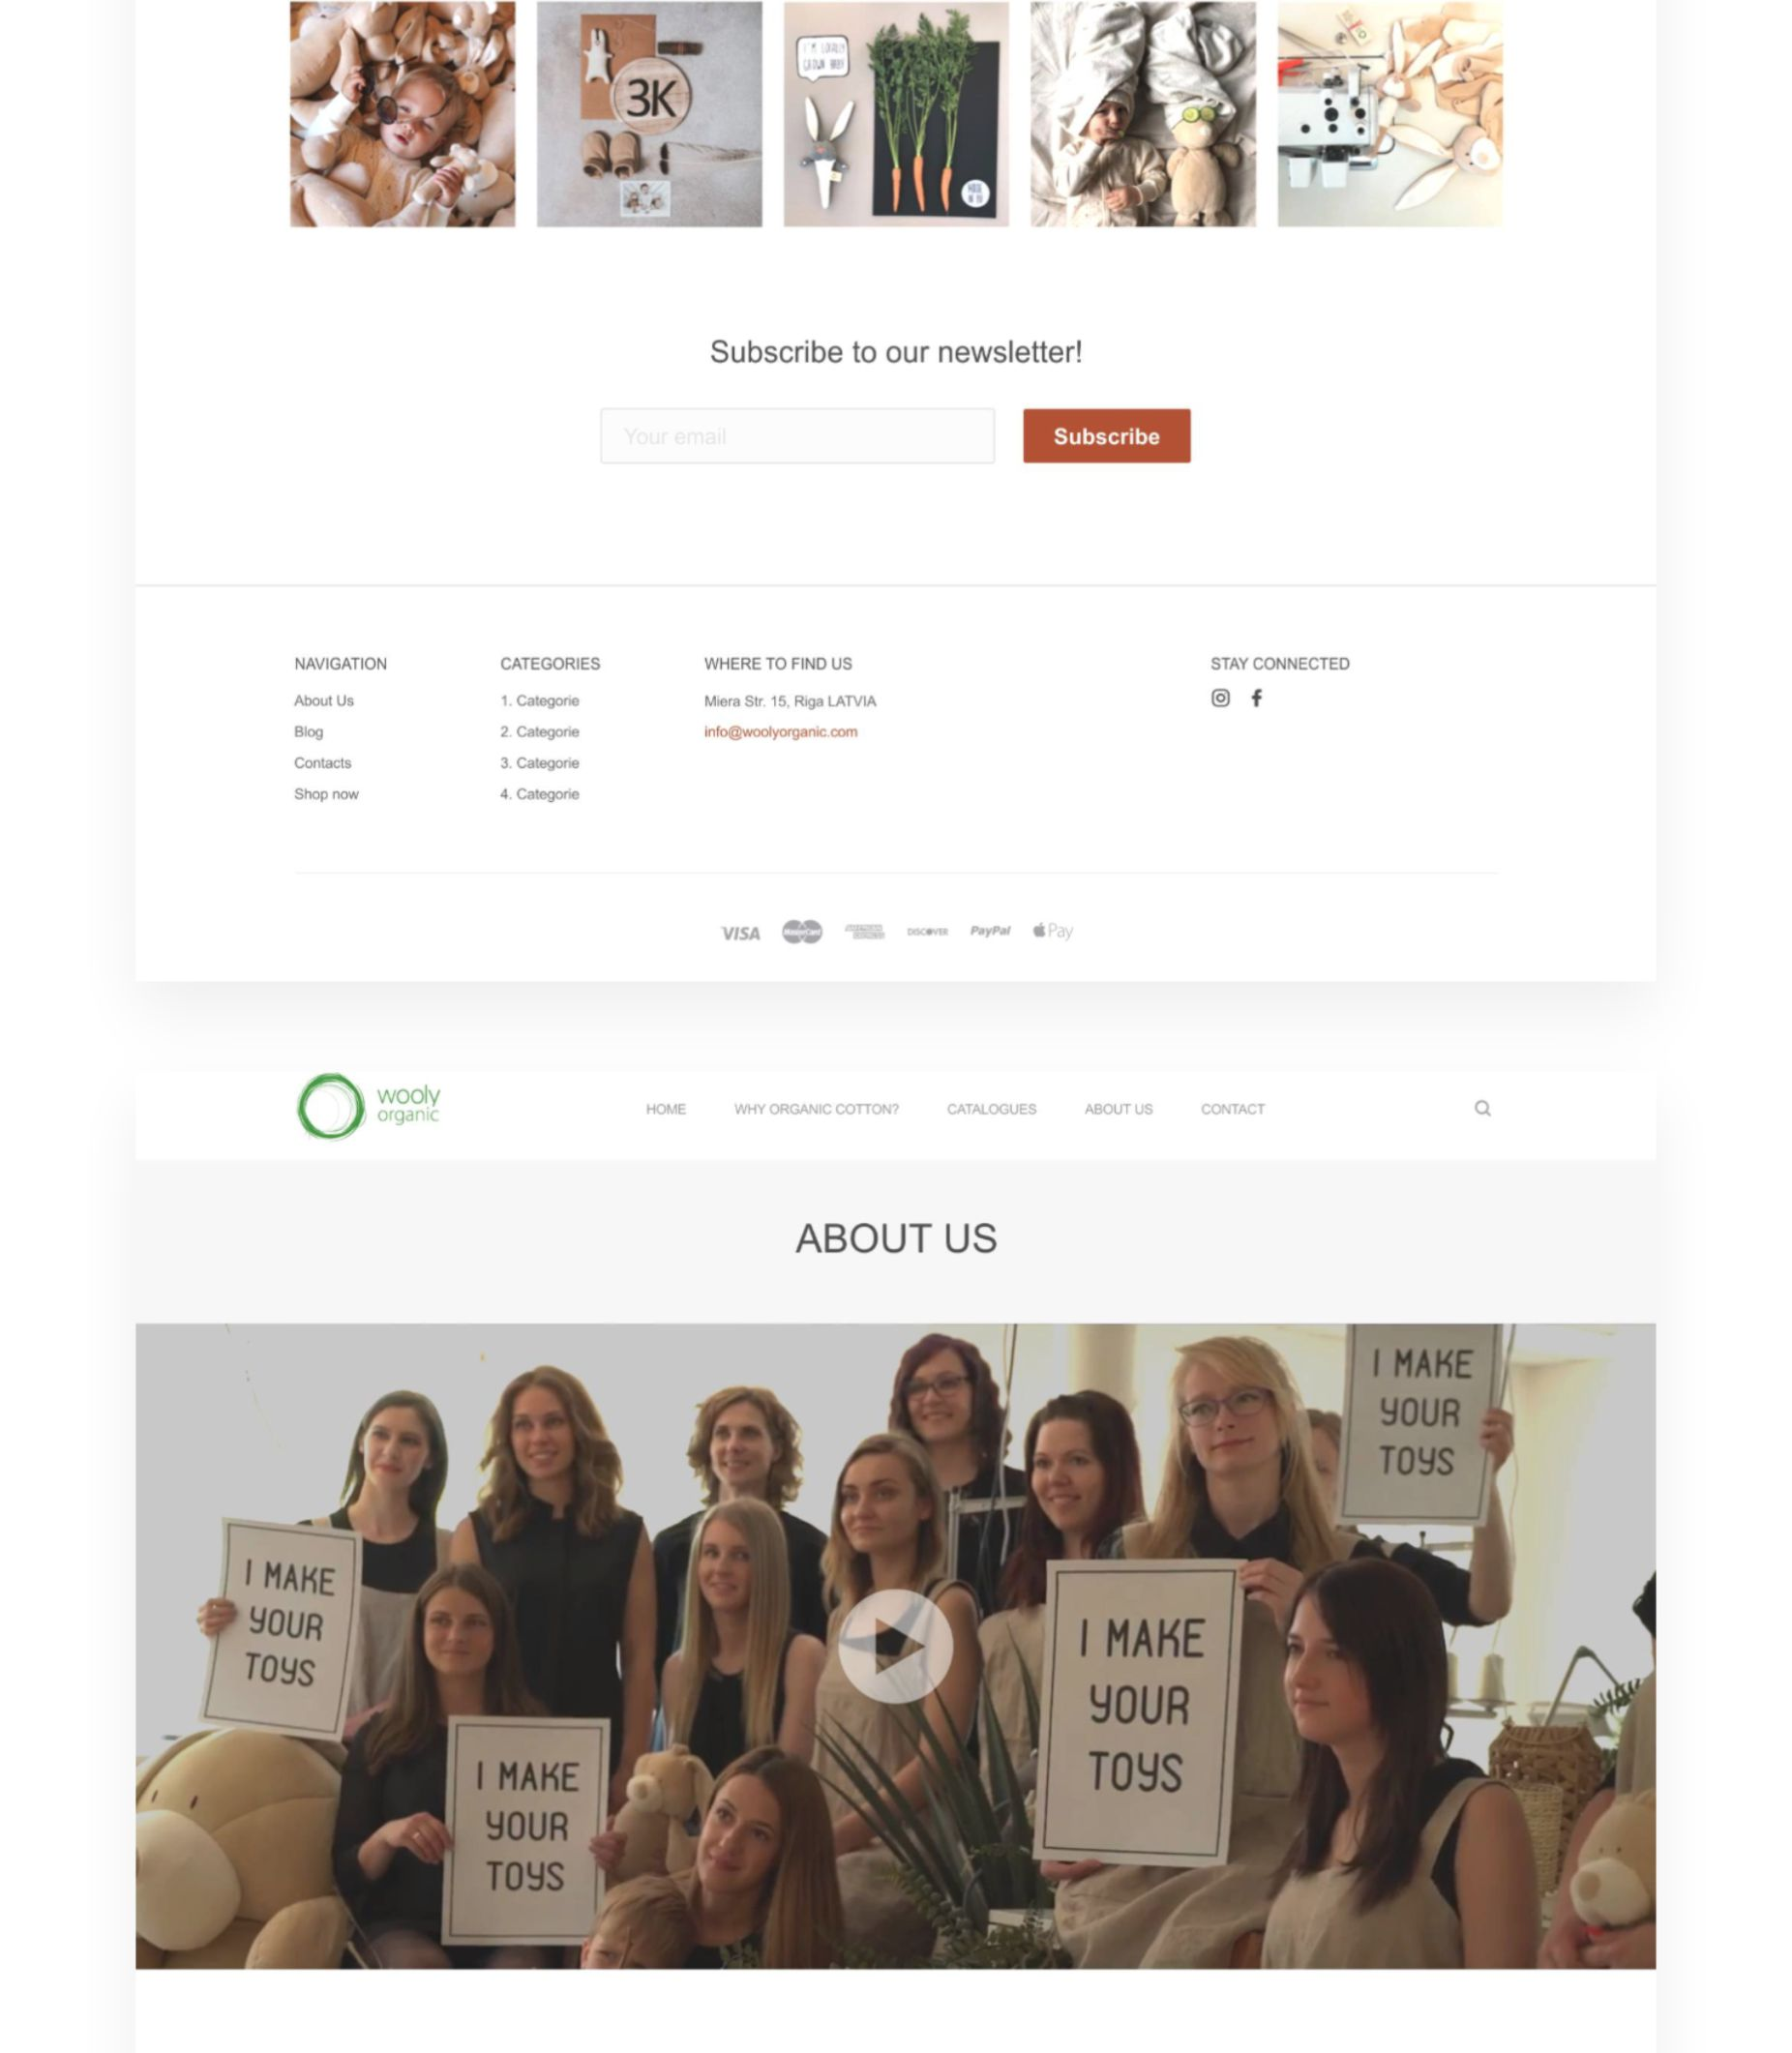 Wooly Organic BigCommerce online shop design and development - website portfolio